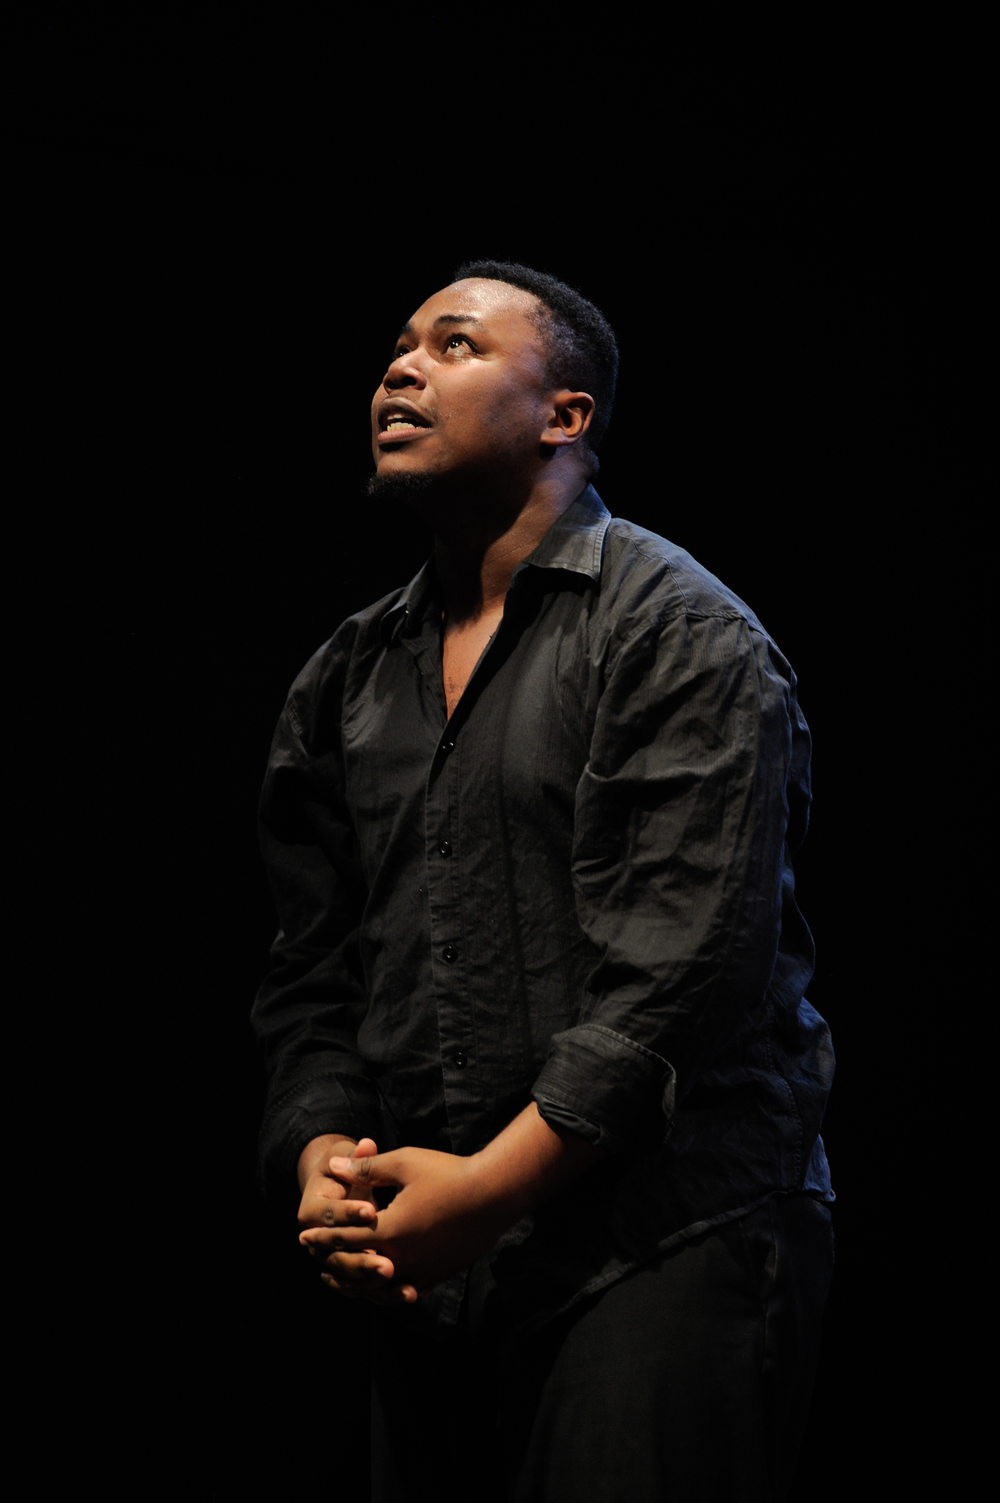 Marcel Spears - Production Photo #2.jpg